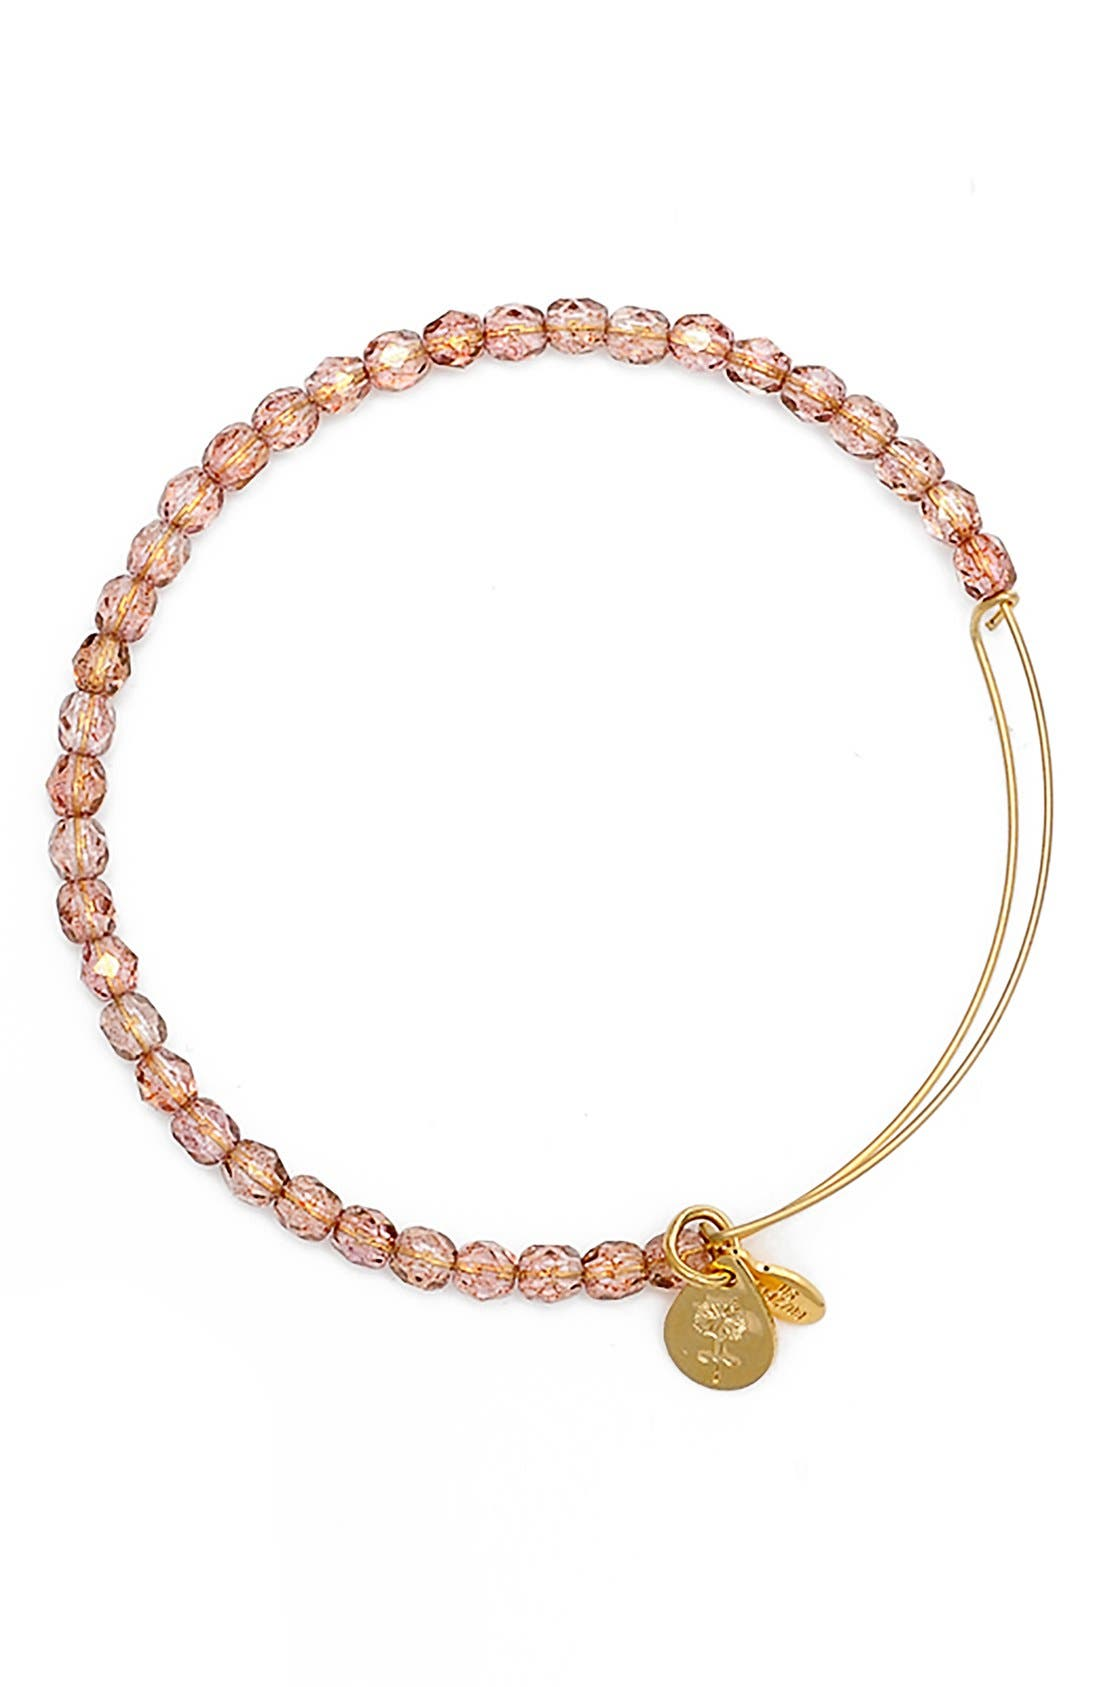 Alternate Image 1 Selected - Alex and Ani 'Rock Candy' Expandable Wire Bangle Bracelet